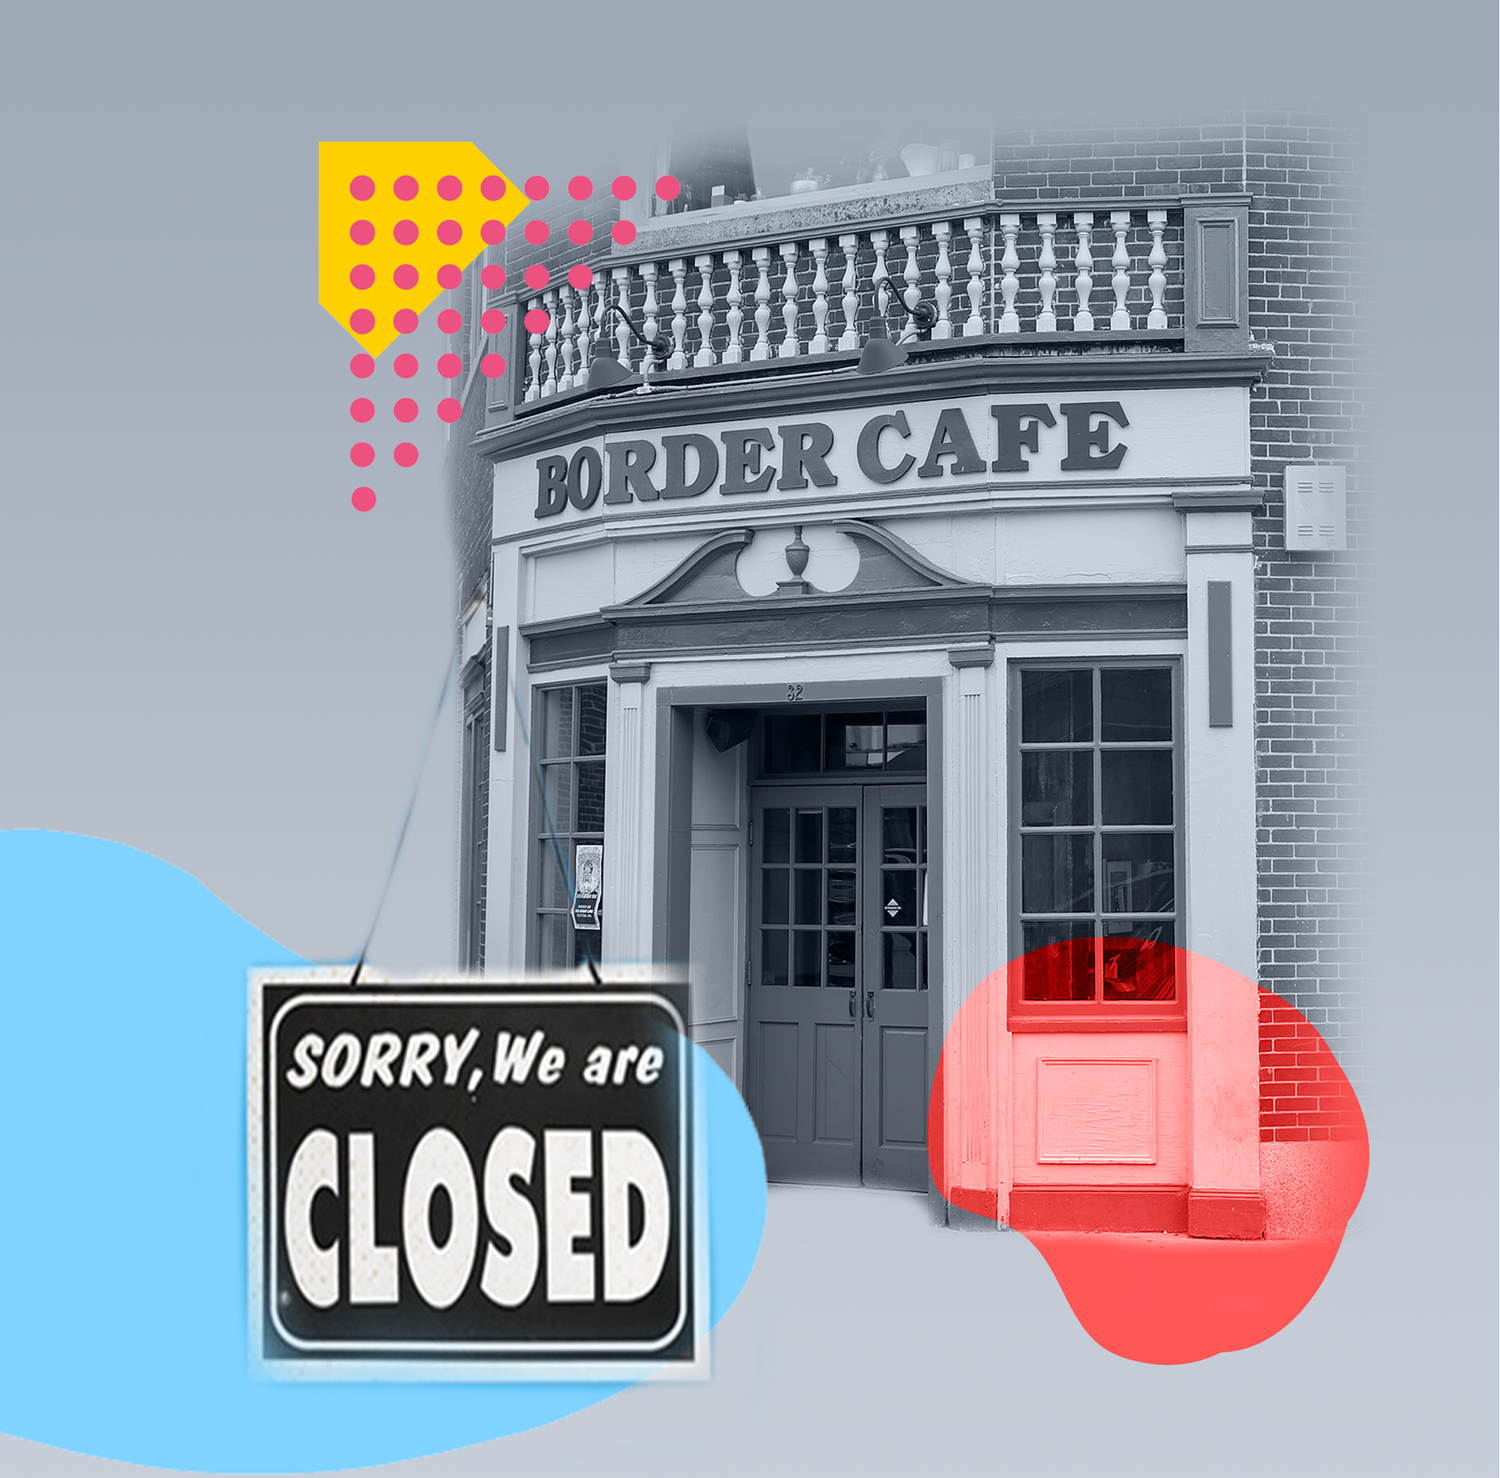 After 34 years in Harvard Square, Border Cafe has permanently closed for business.